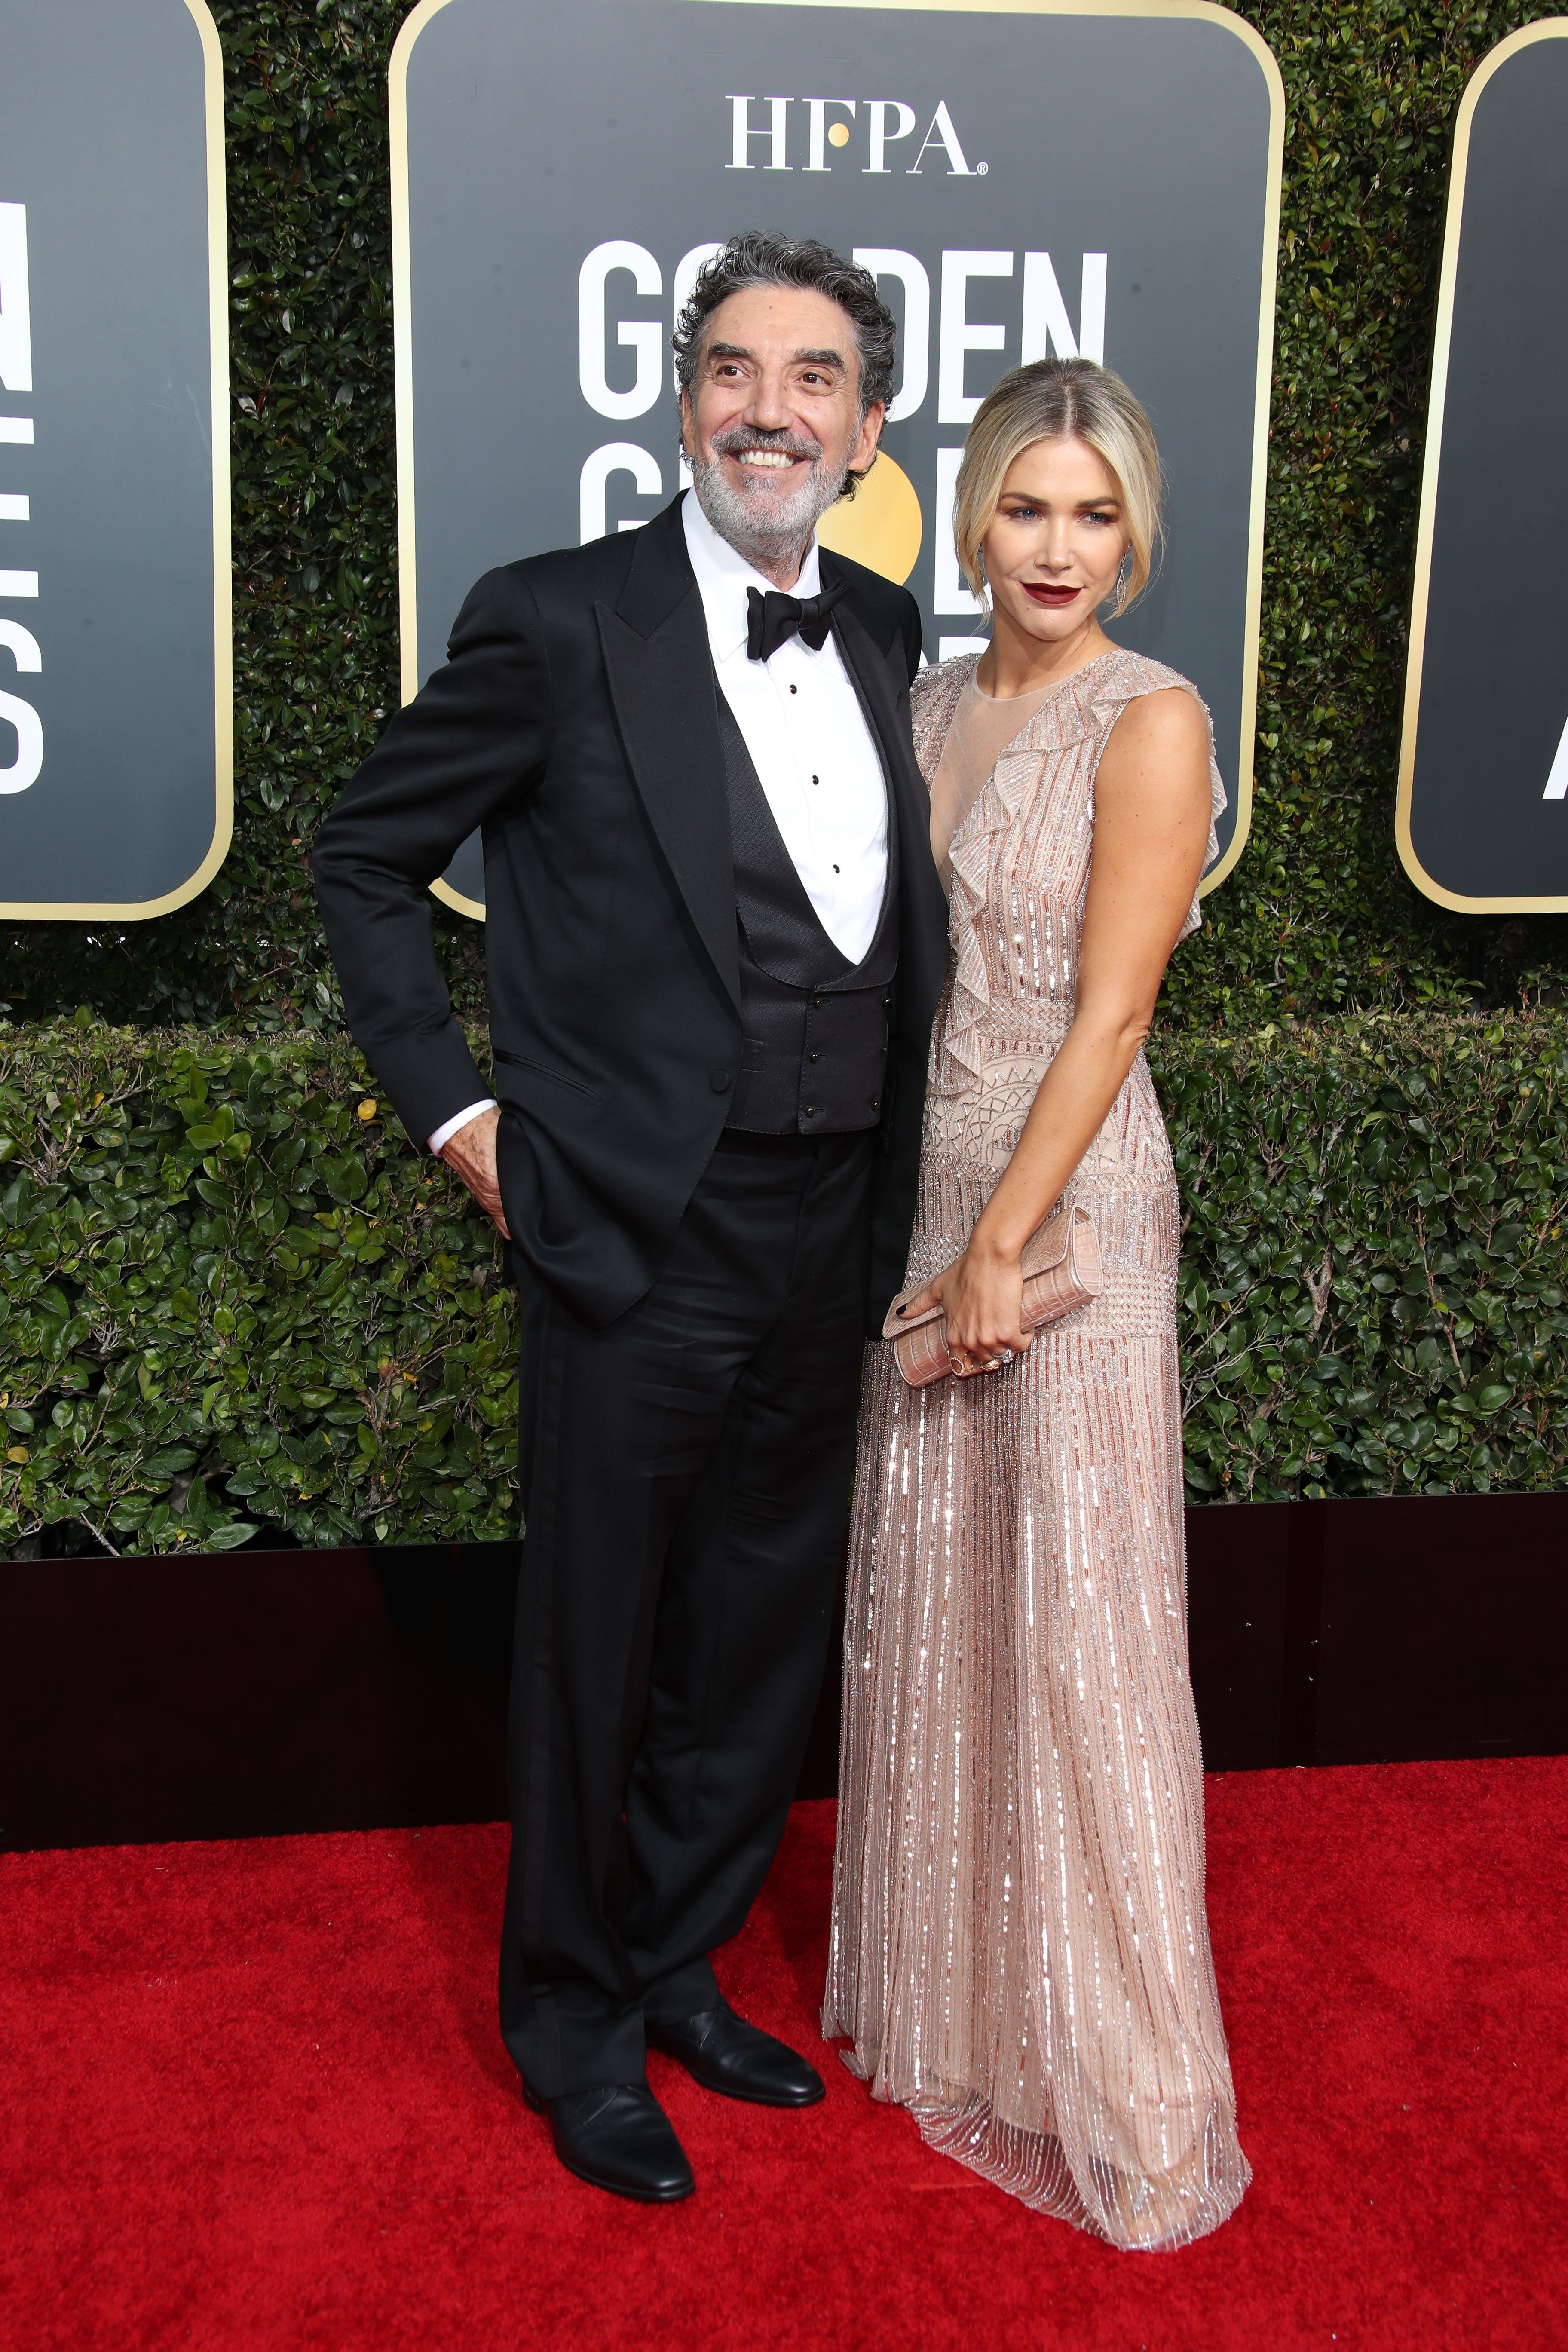 Role reversal: Top TV producer Chuck Lorre gives our photographer two seconds of fame